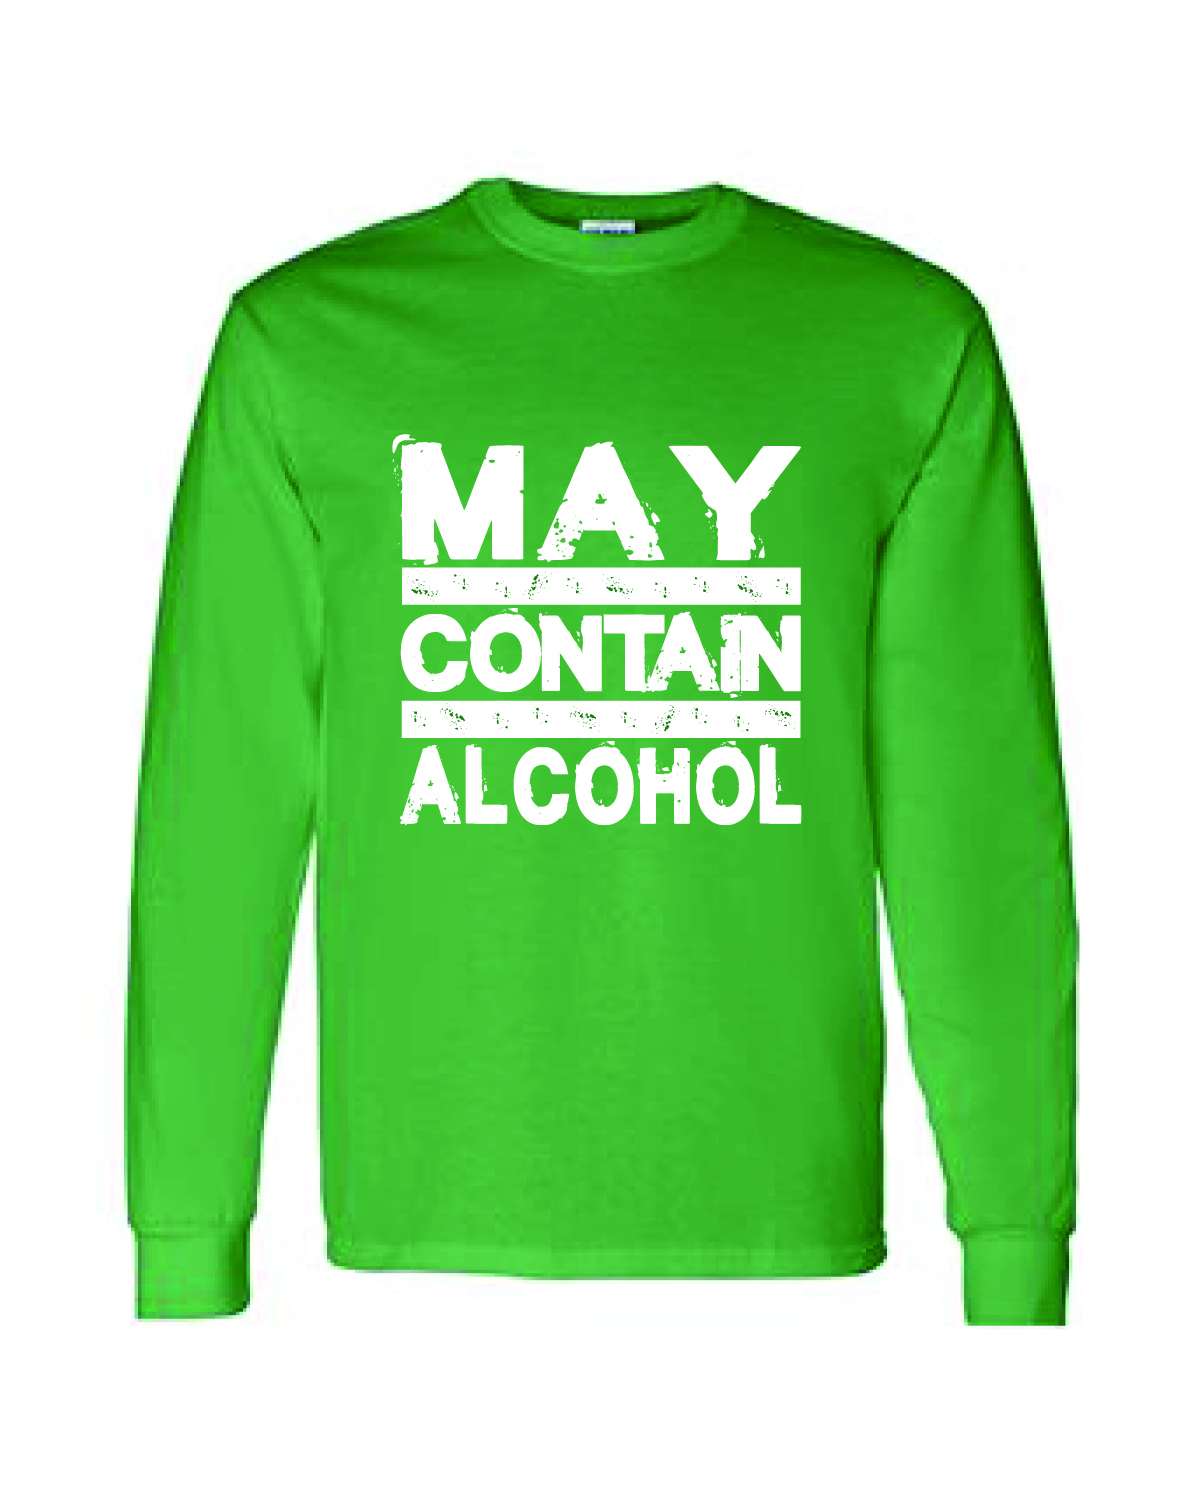 St. Patty's Day Long Sleeve Tee - May Contain Alcohol